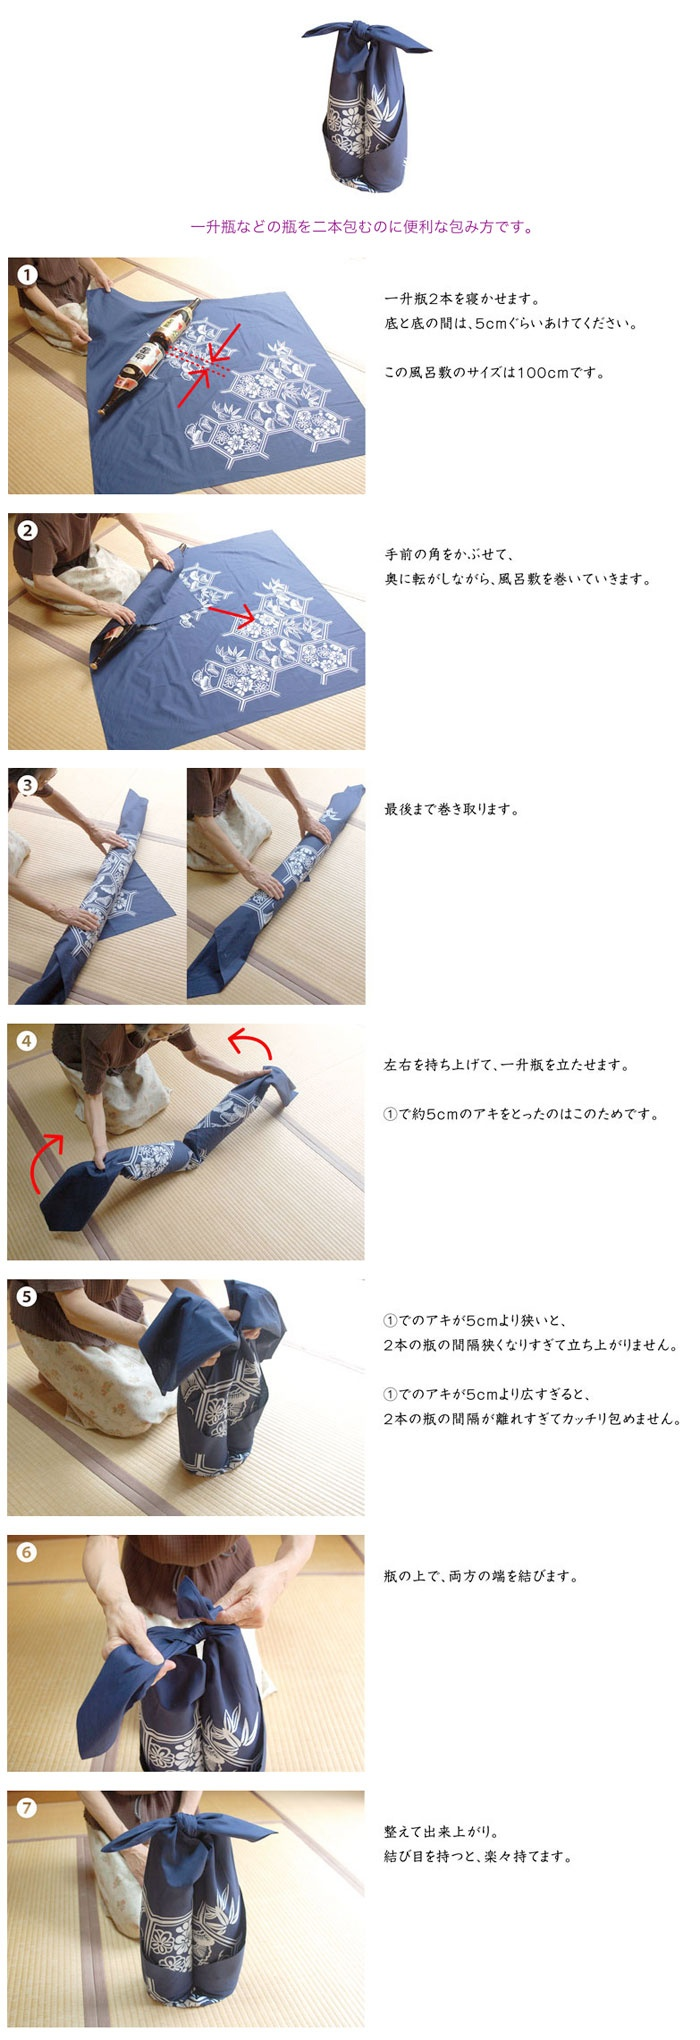 How to wrap two bottles in furoshiki.